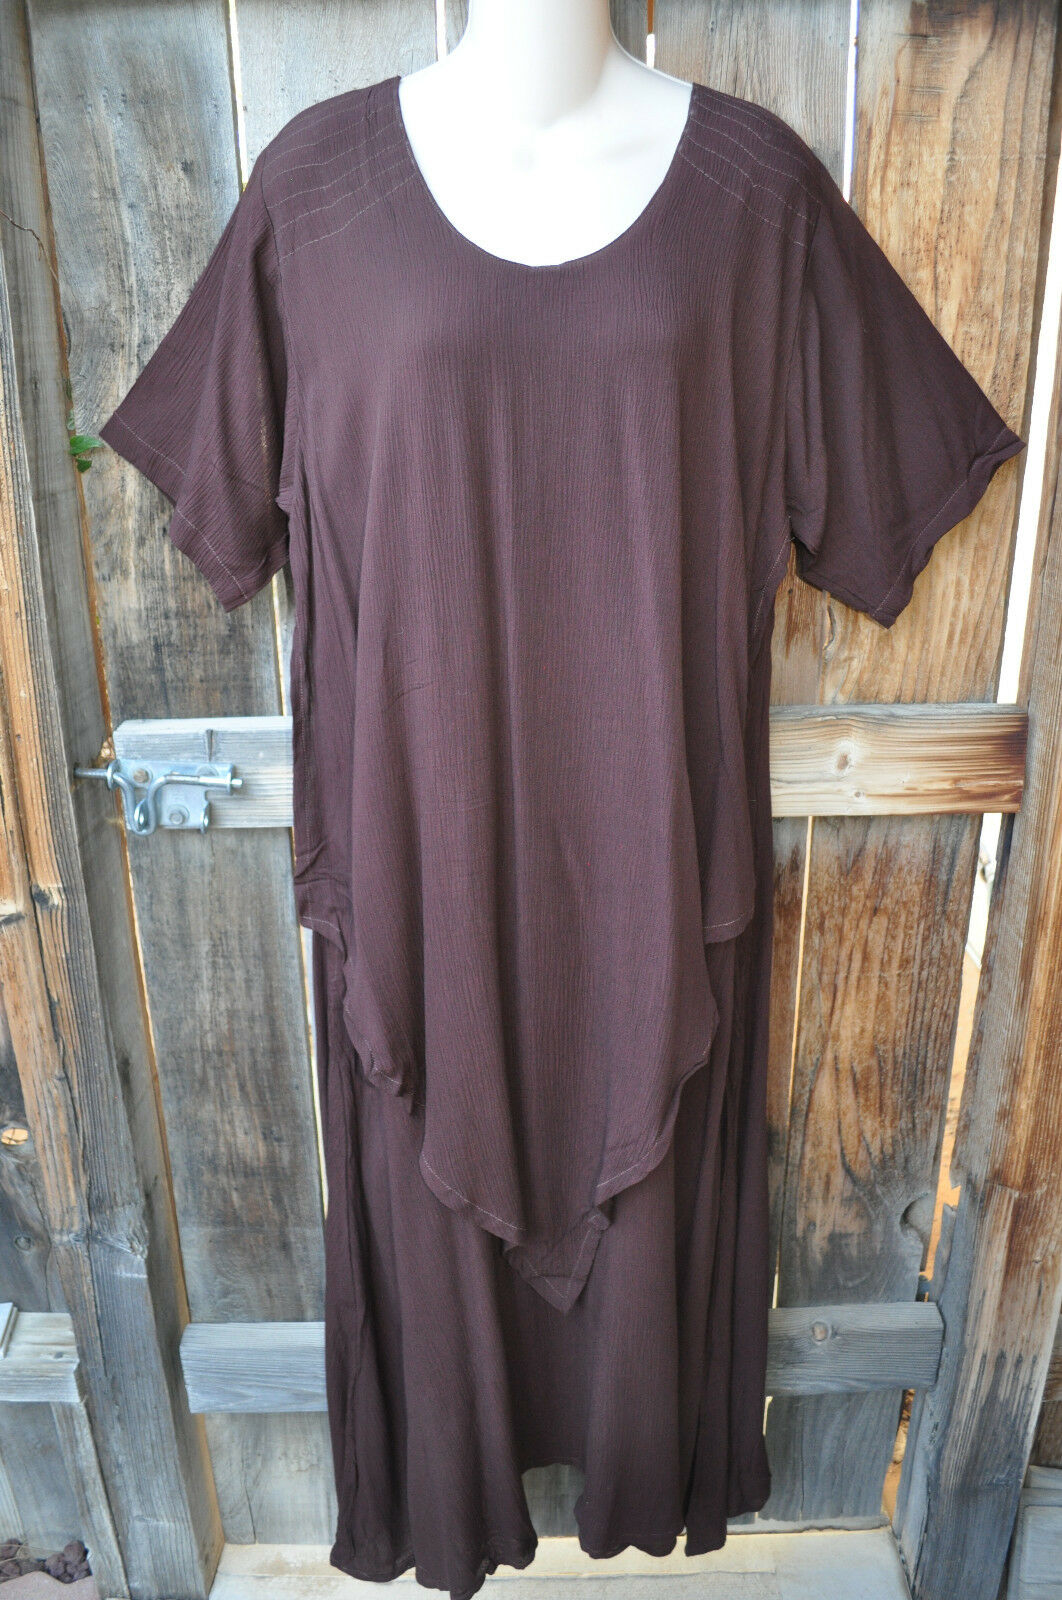 ART TO WEAR LAPIS DRESS IN ALL NEW SOLID COCO BY MISSION CANYON, SZ SMALL, 42 B